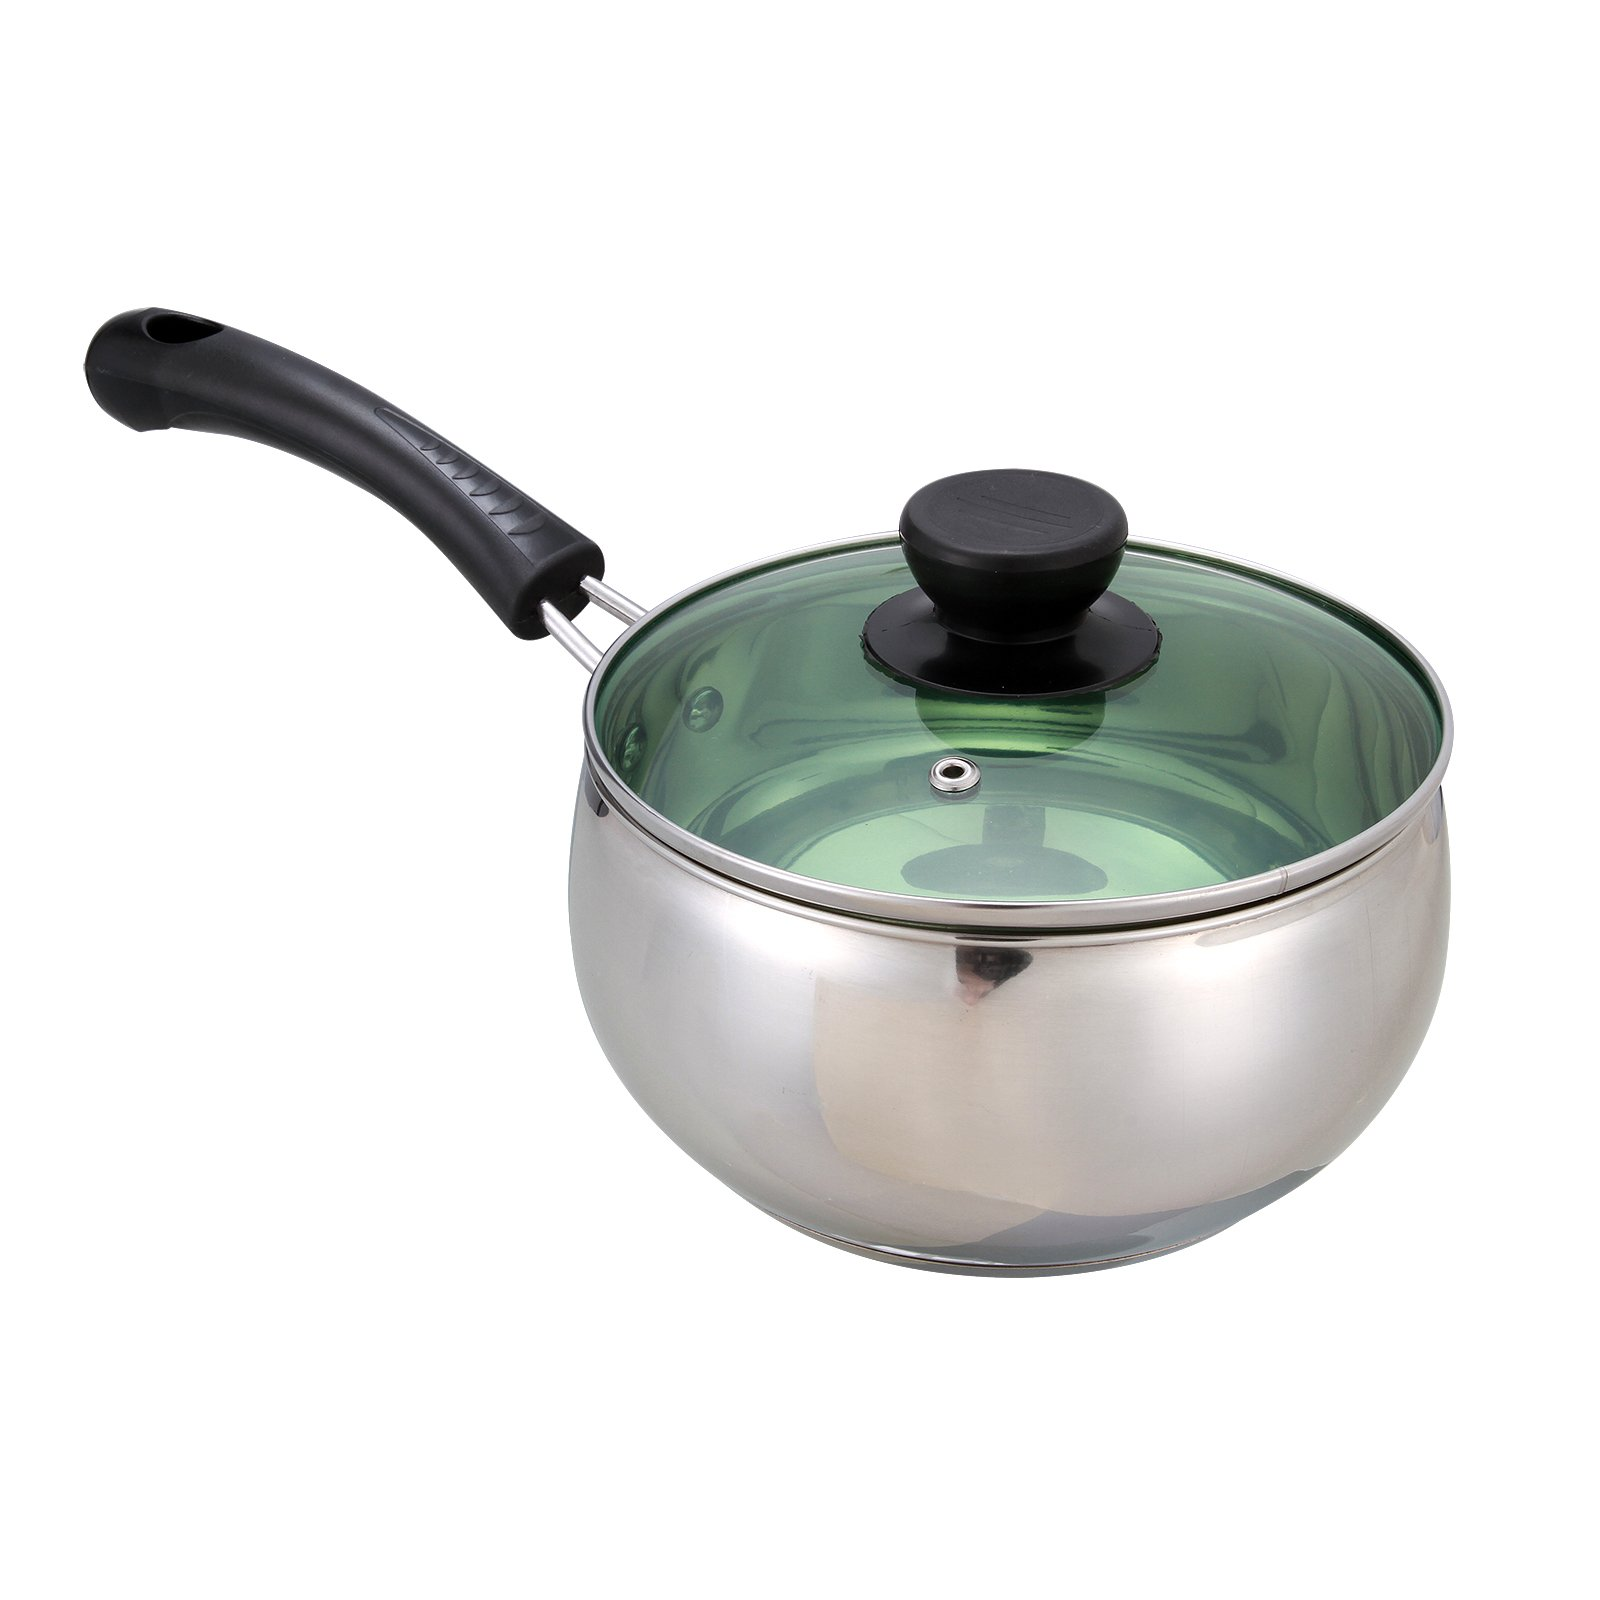 Anmas Home Stainless Steel 2 Quart Saucepan Soup Milk Pot with Lid Handle Induction Ceramic Gas Cooktop Compatiable (B Style)